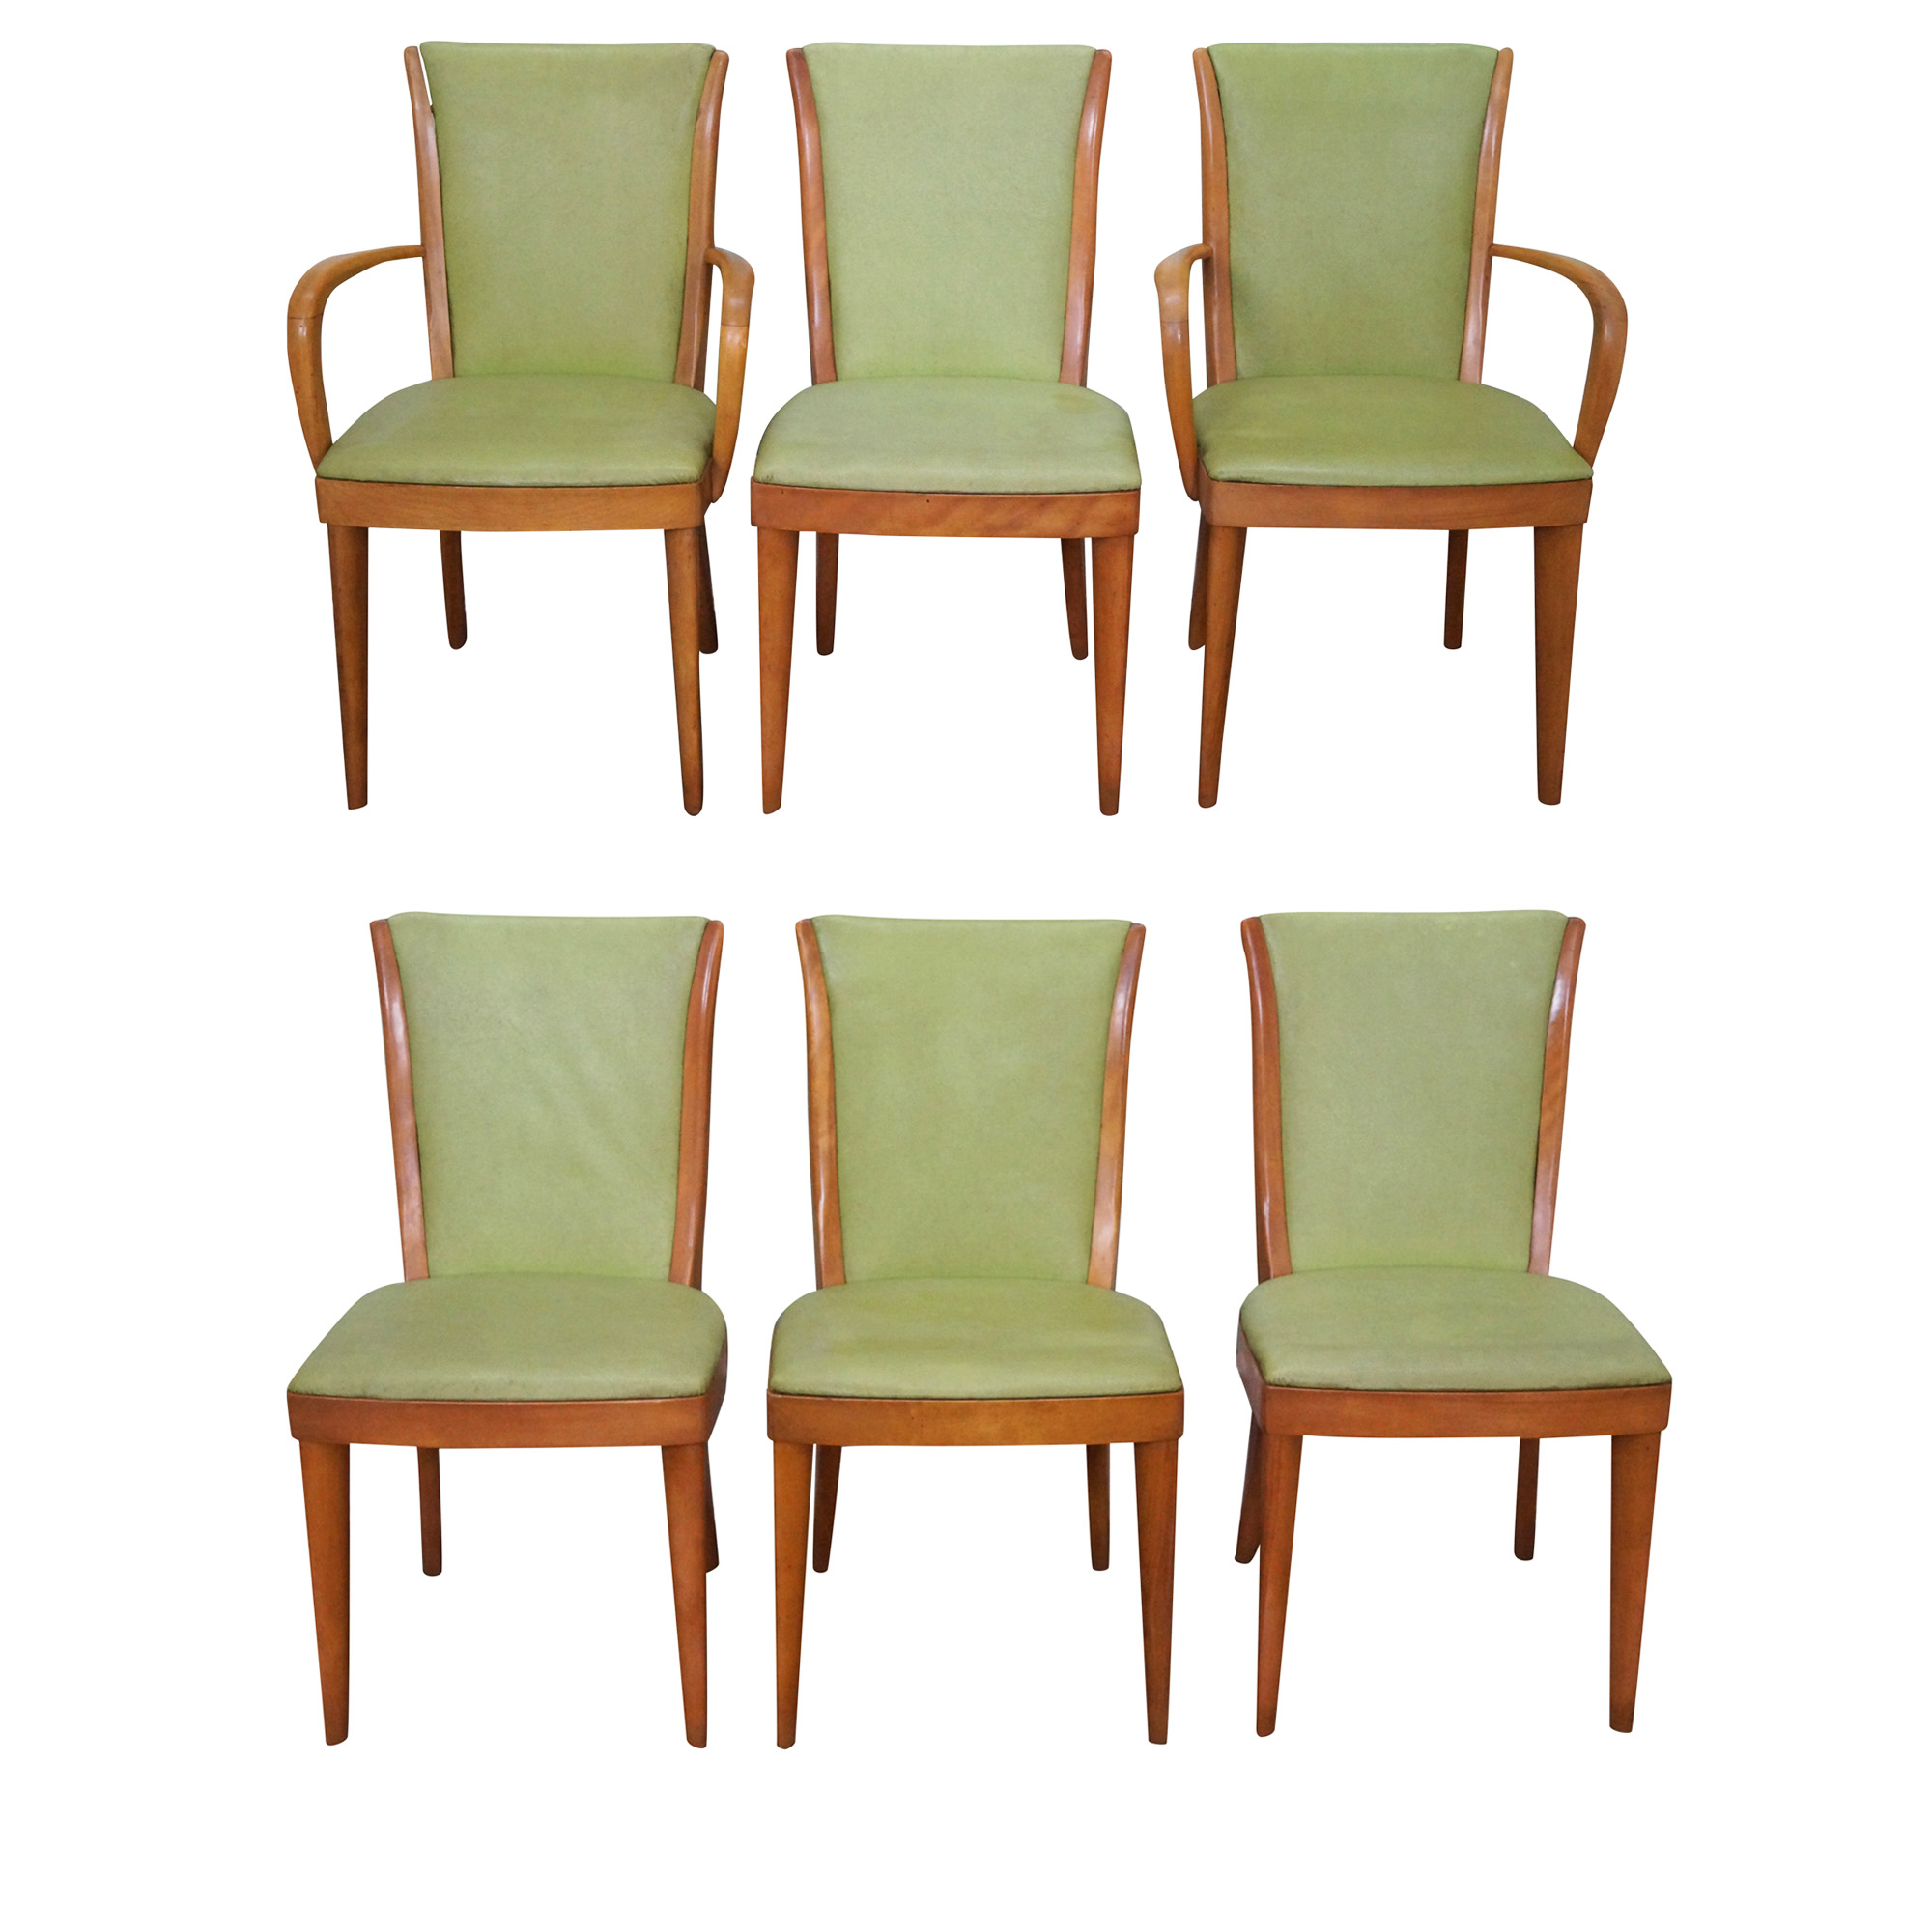 Heywood-Wakefield Vintage Dining Chairs - Set of 6 | Chairish